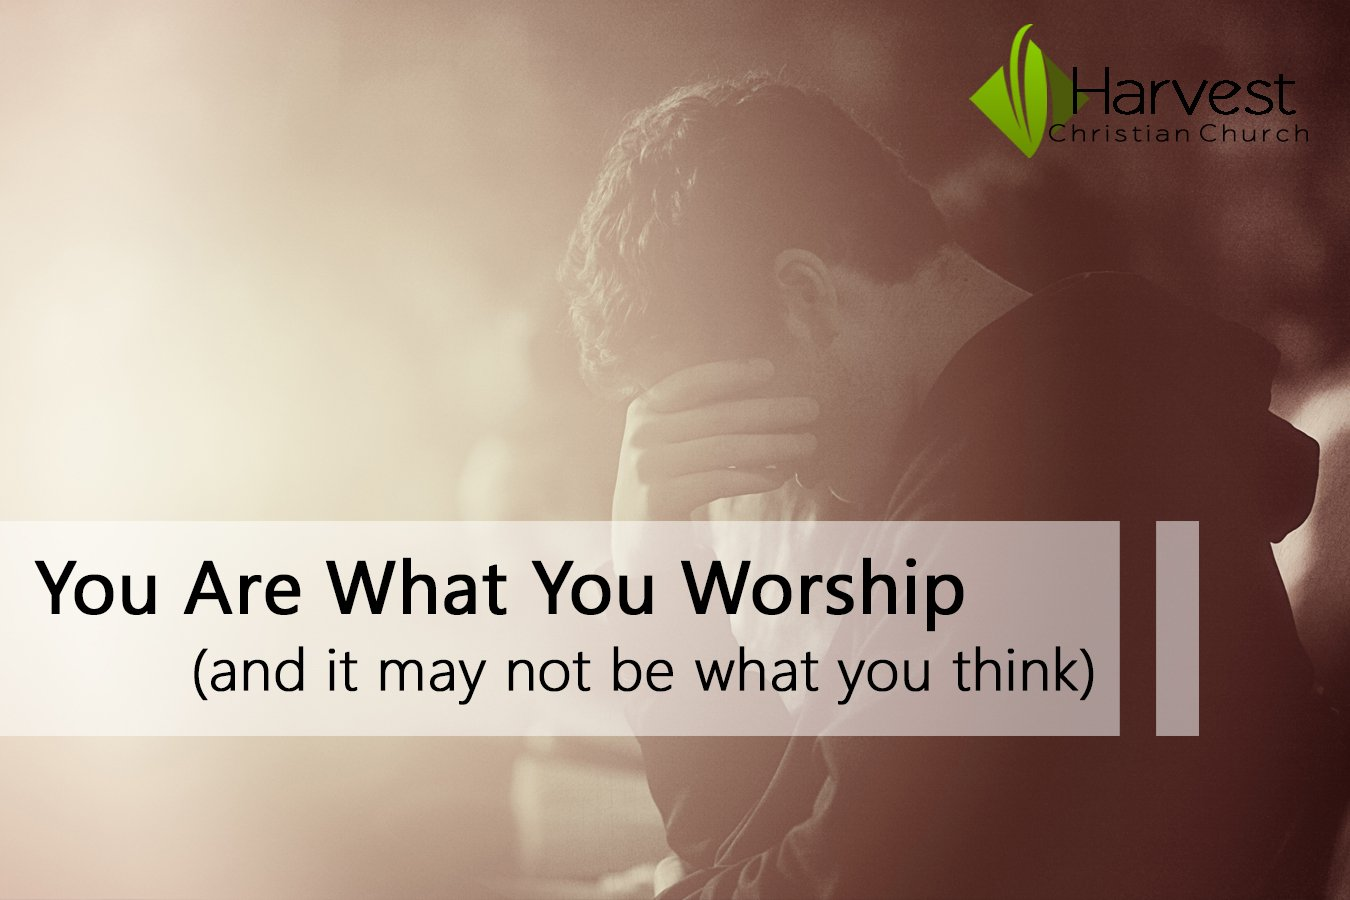 You Are What You Worship (and it may not be what you think)